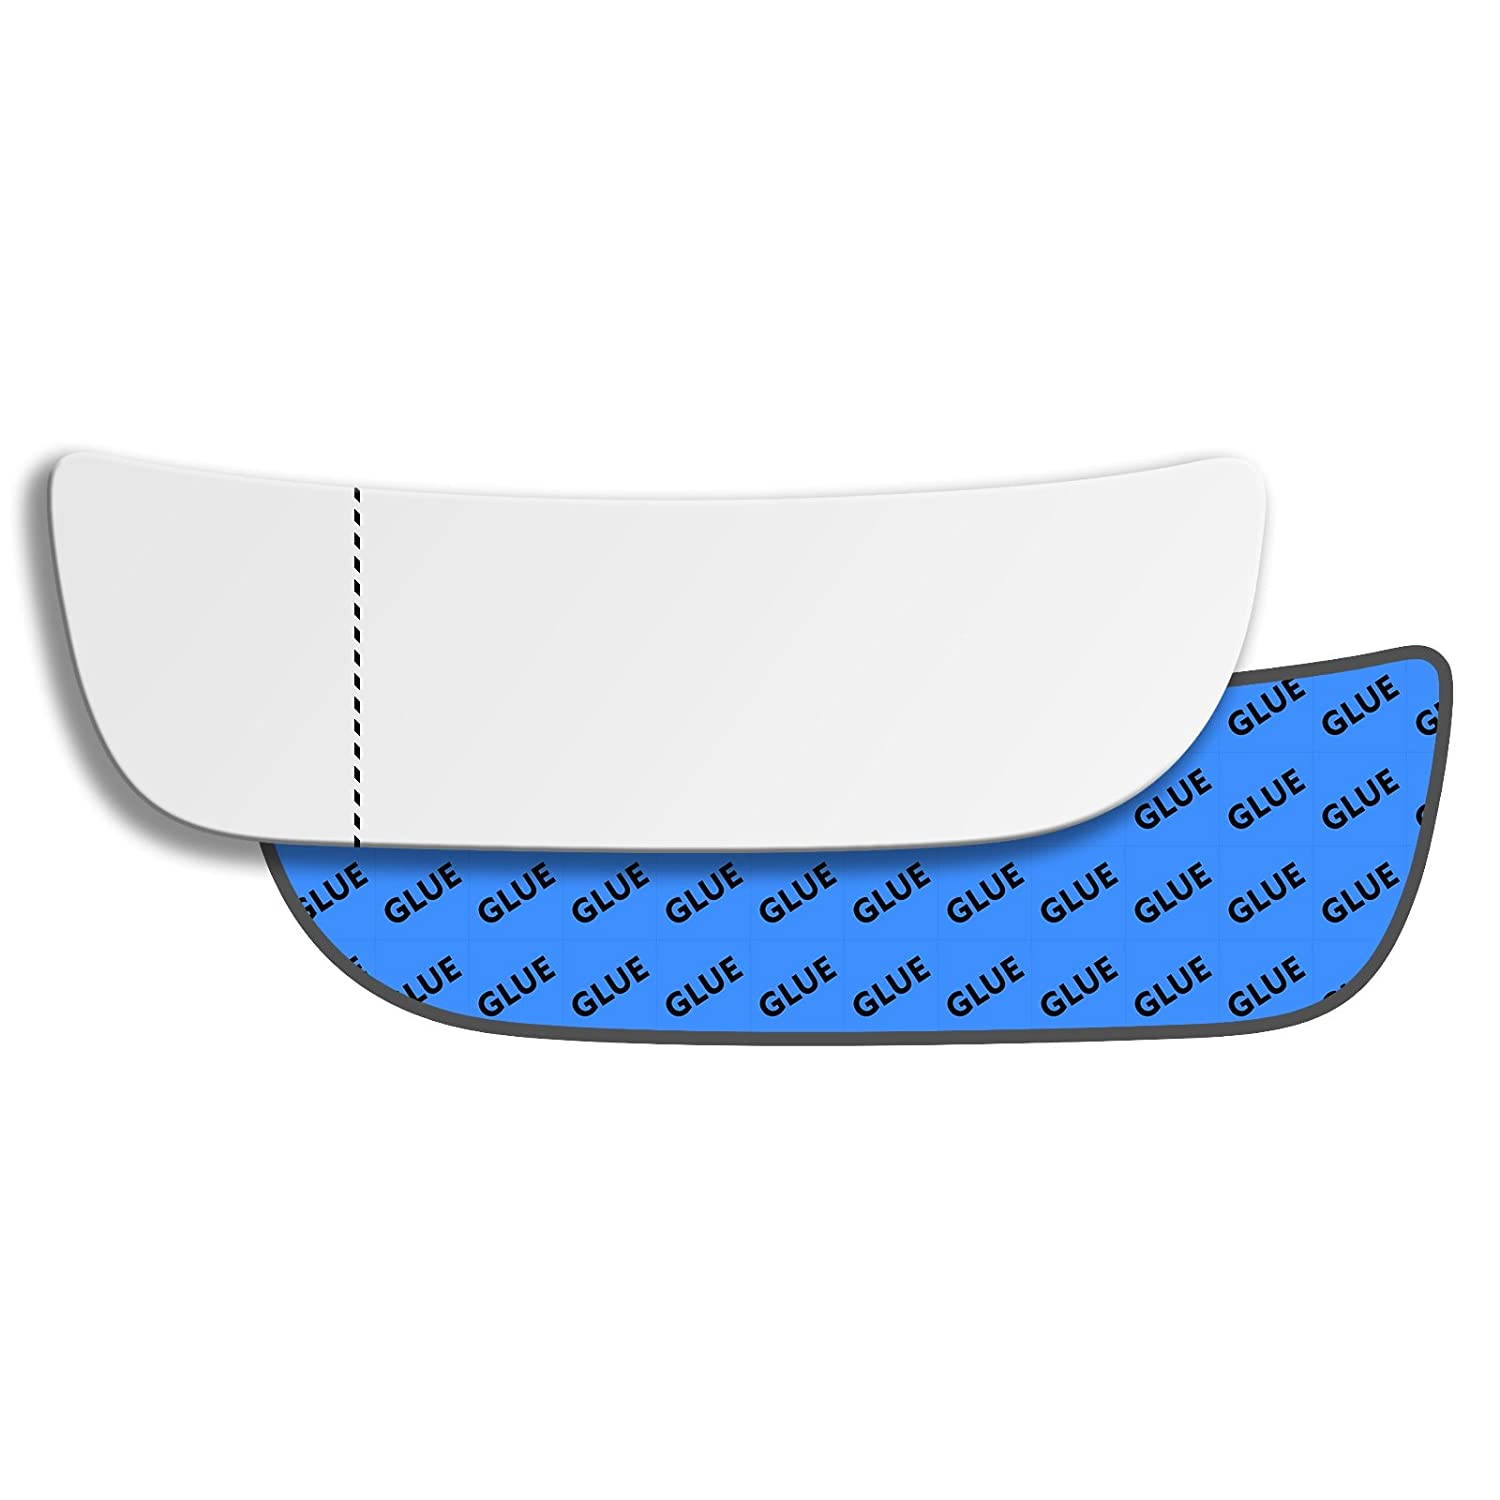 Hightecpl 761LAS Left Hand Passenger Near Side Wide Angle Door Wing Mirror Glass Replacement Channel Autoparts Limited